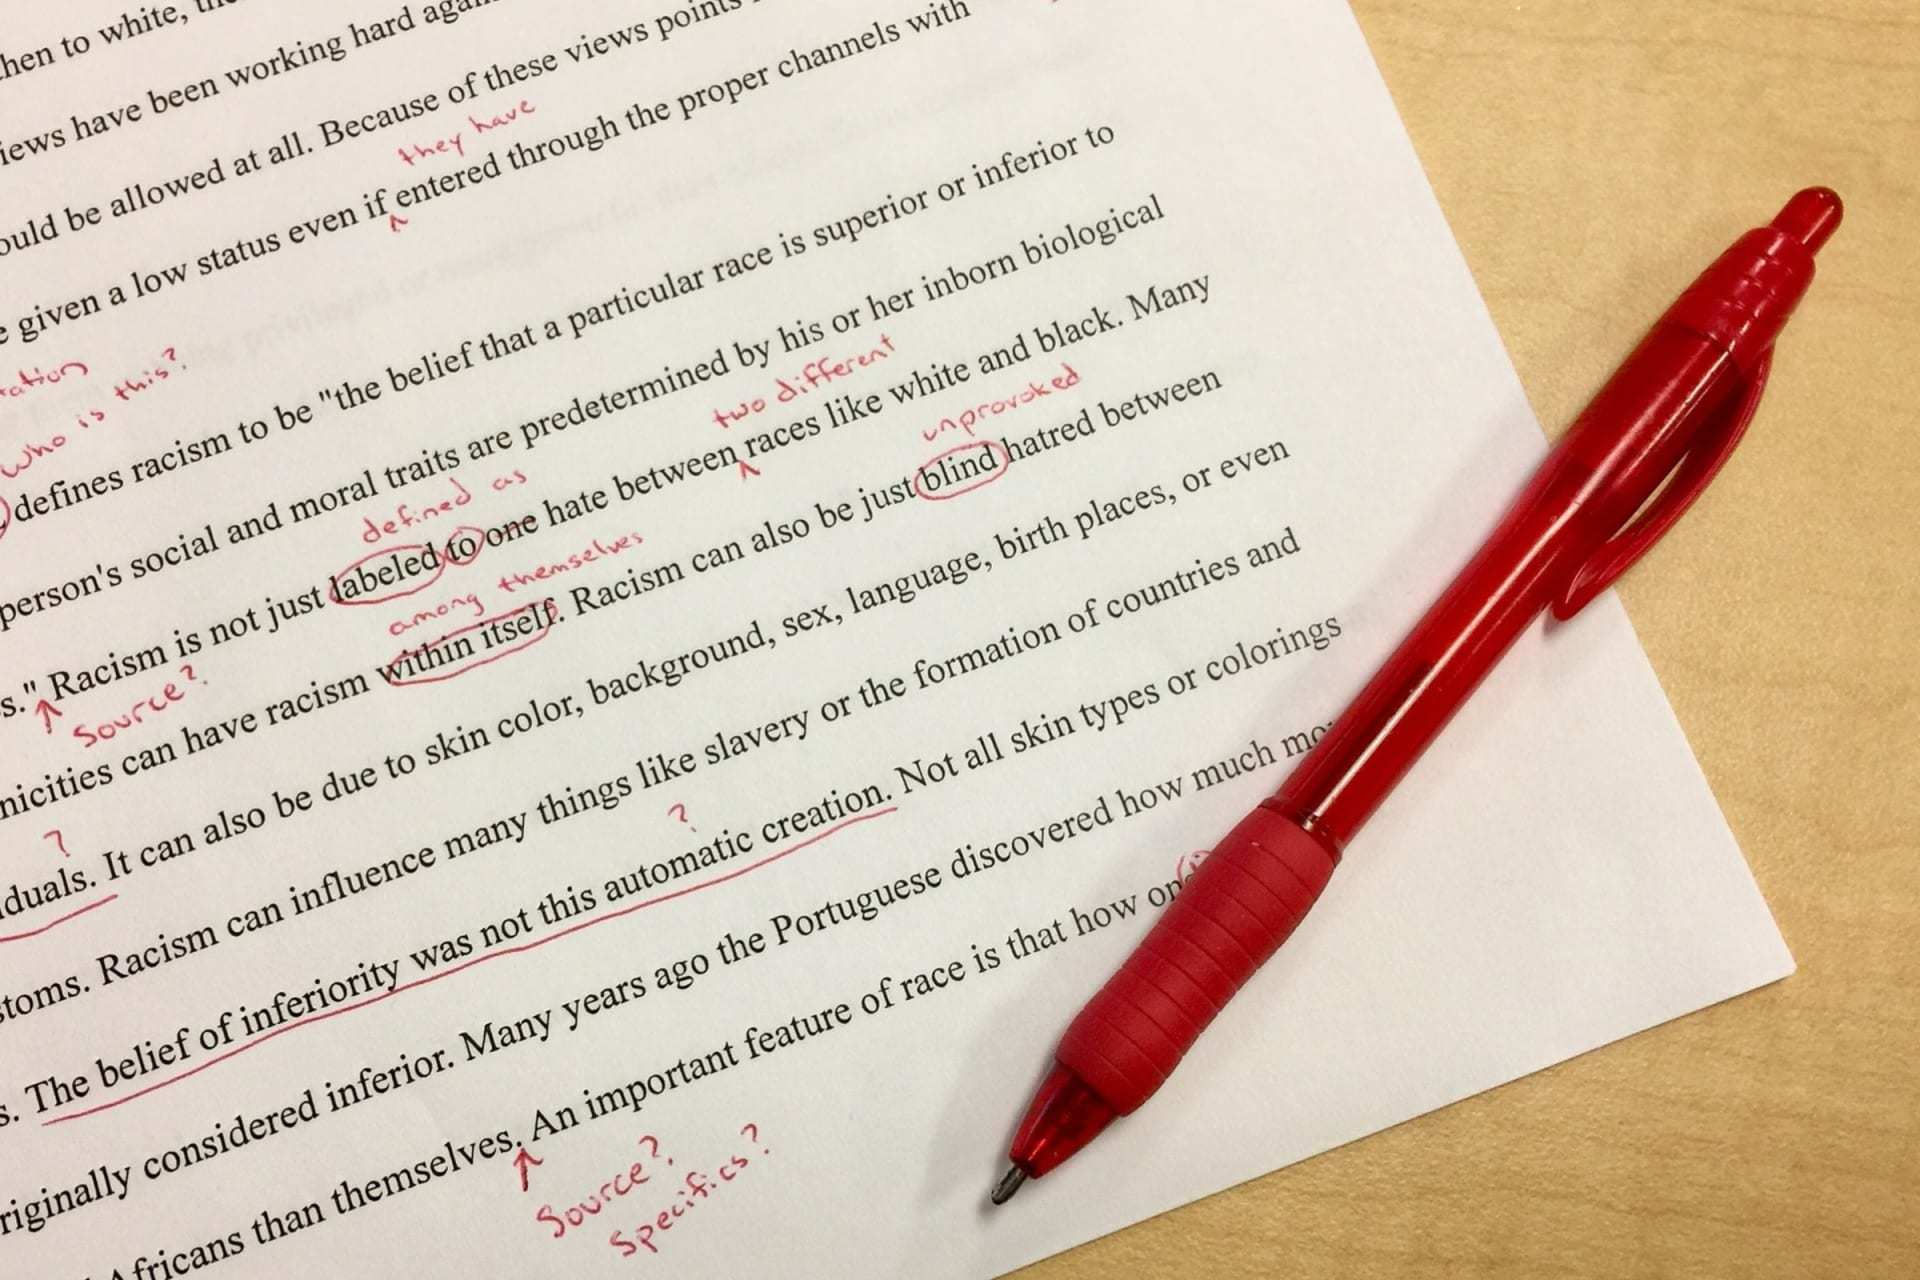 editing with a red pen